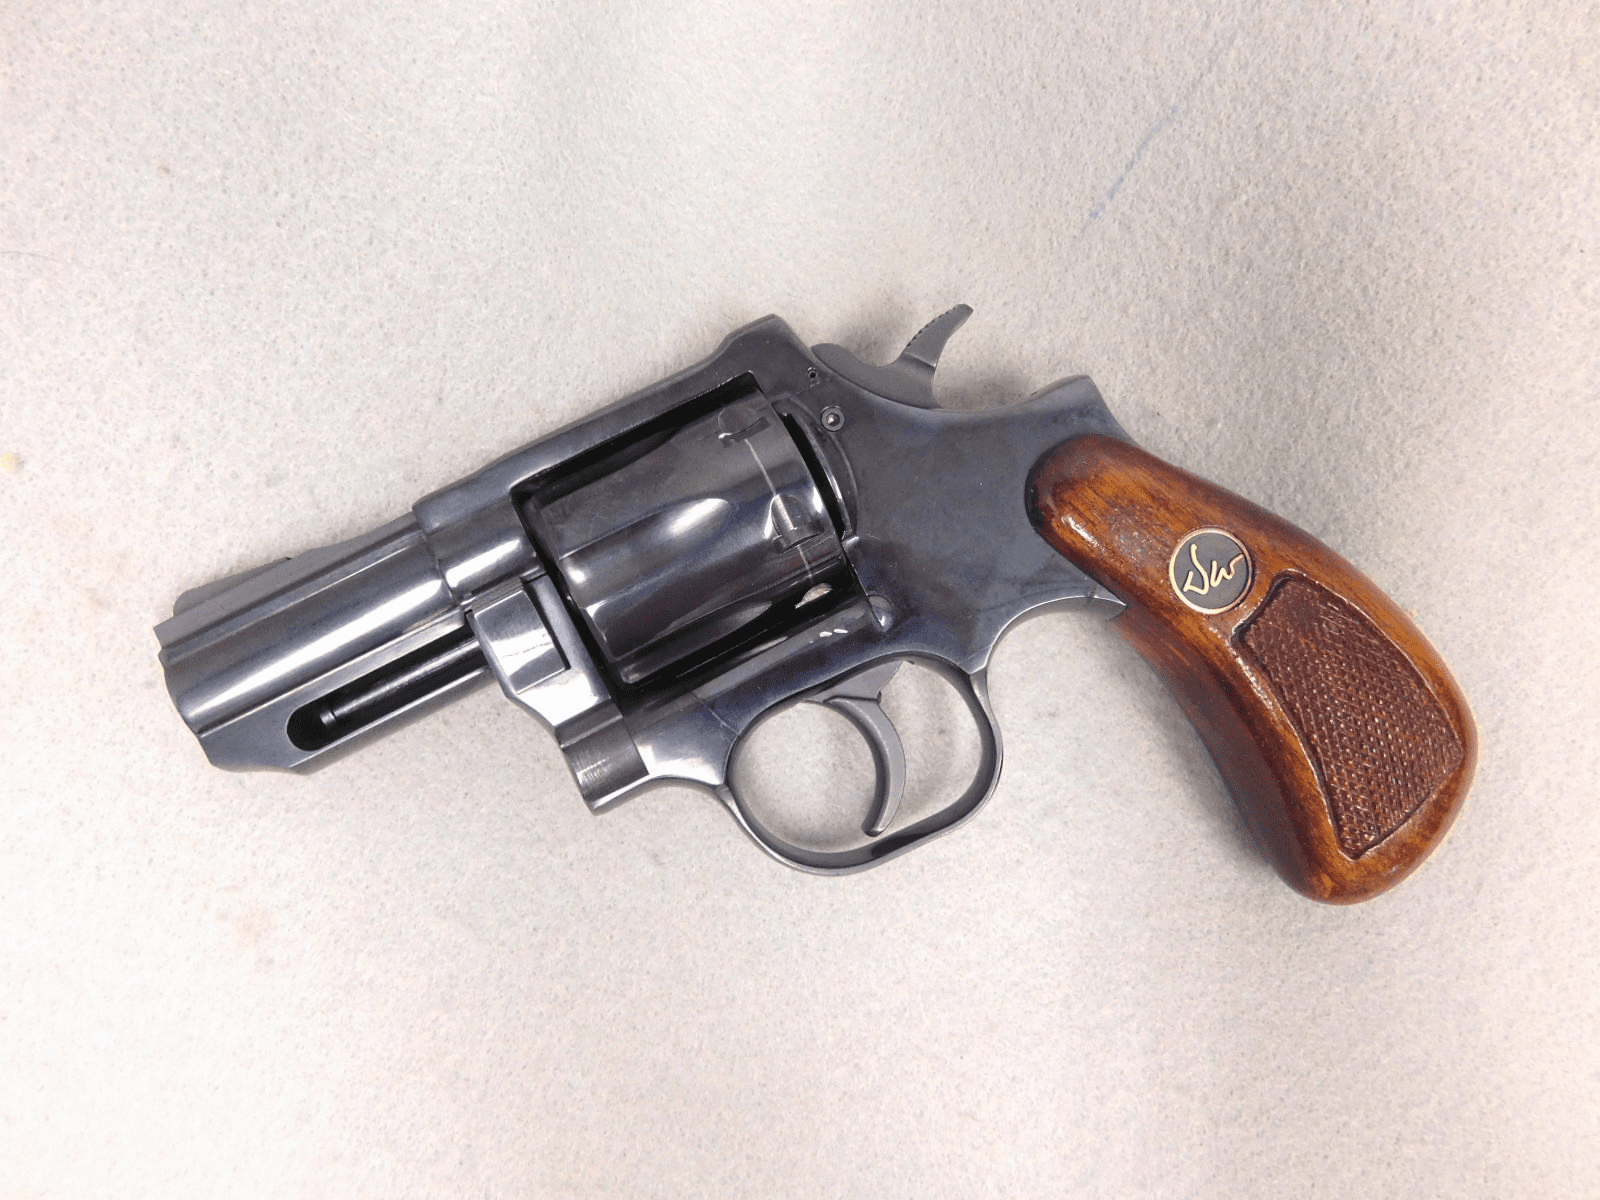 Dan Wesson Model 14 (.357)